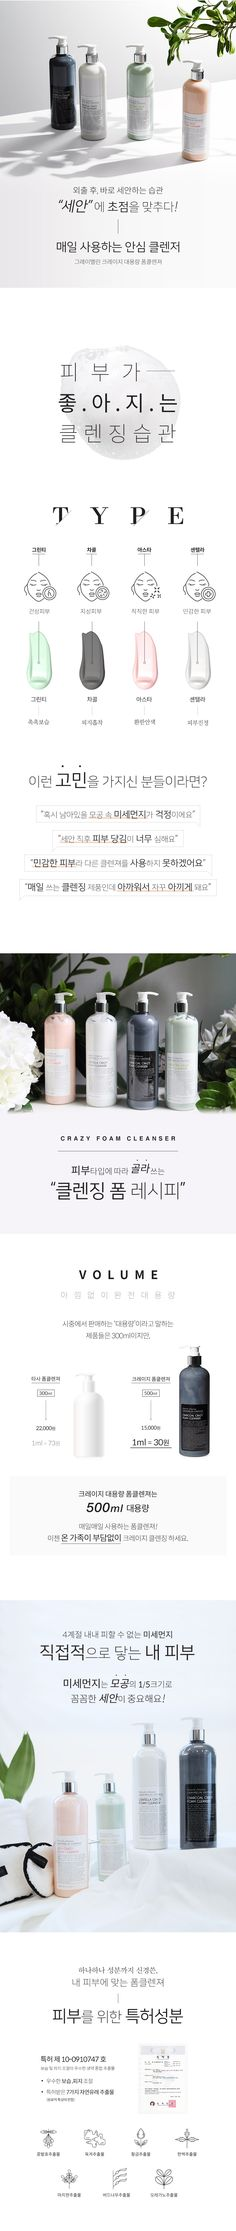 cosmetic, event page, k-beauty, layout design Cosmetic Packaging, Beauty Packaging, Packaging Design, Web Layout, Layout Design, Page Design, Web Design, Free Banner Templates, Best Banner